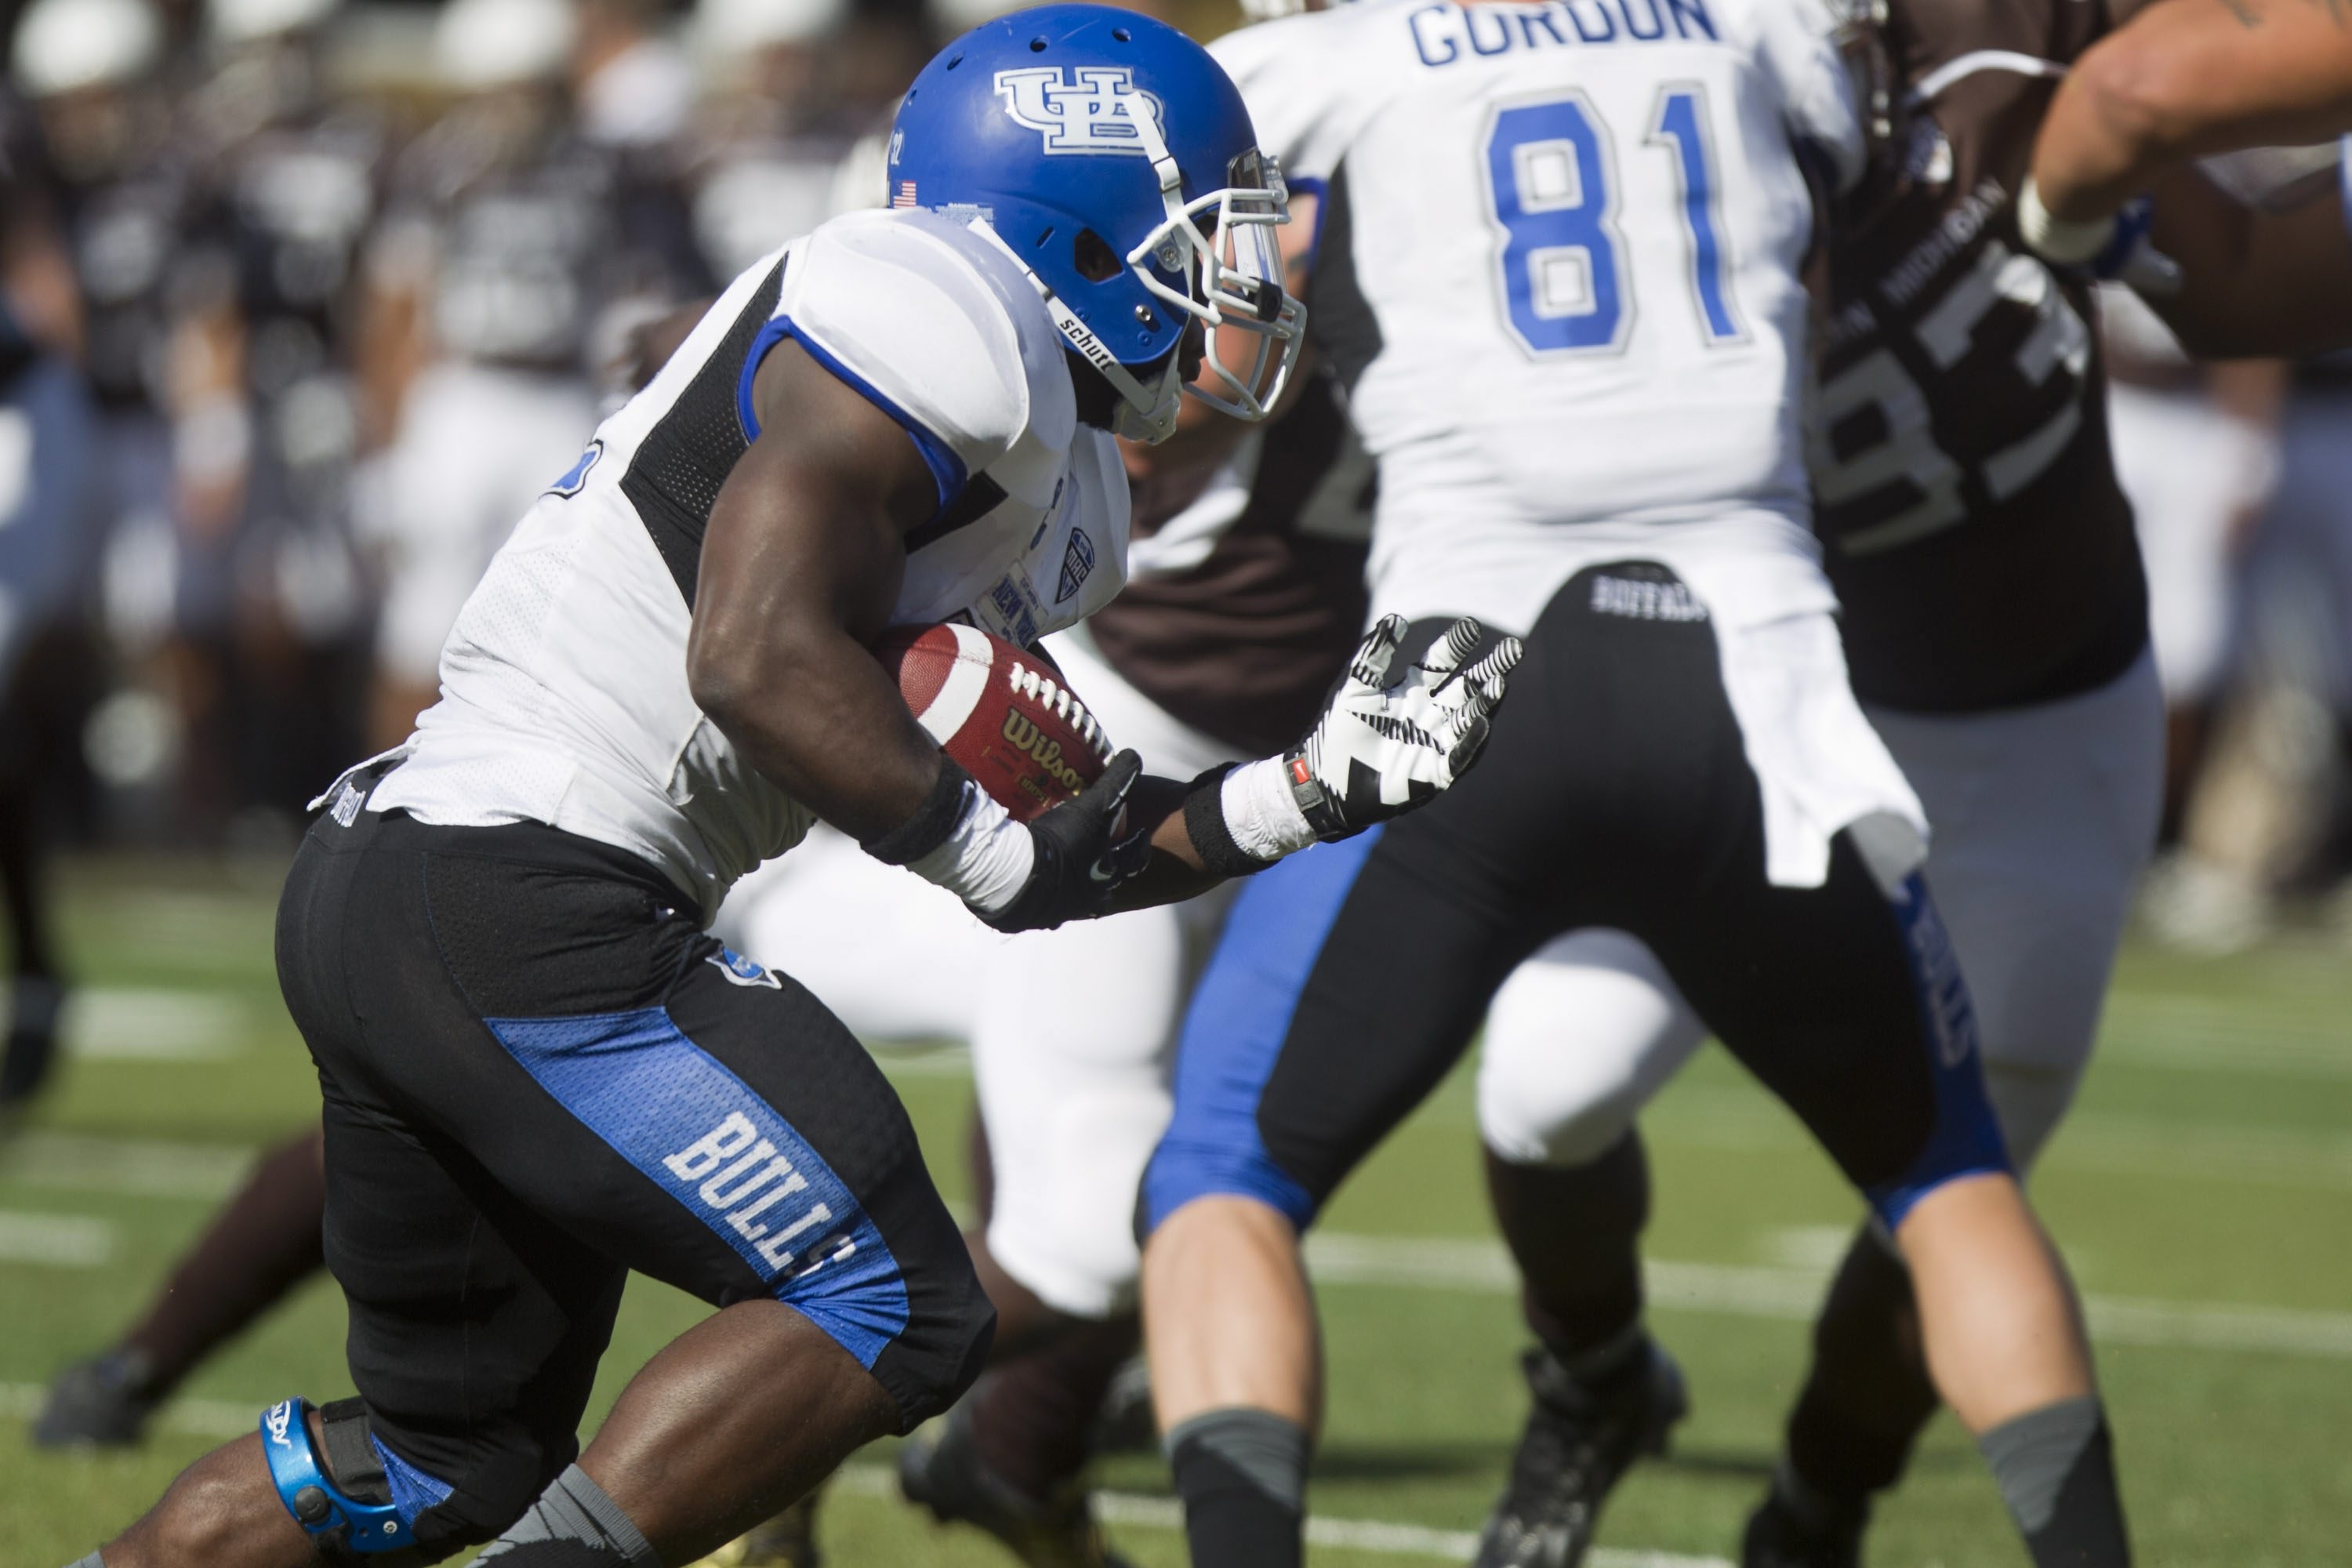 UB running back Branden Oliver had 128 yards on the ground.